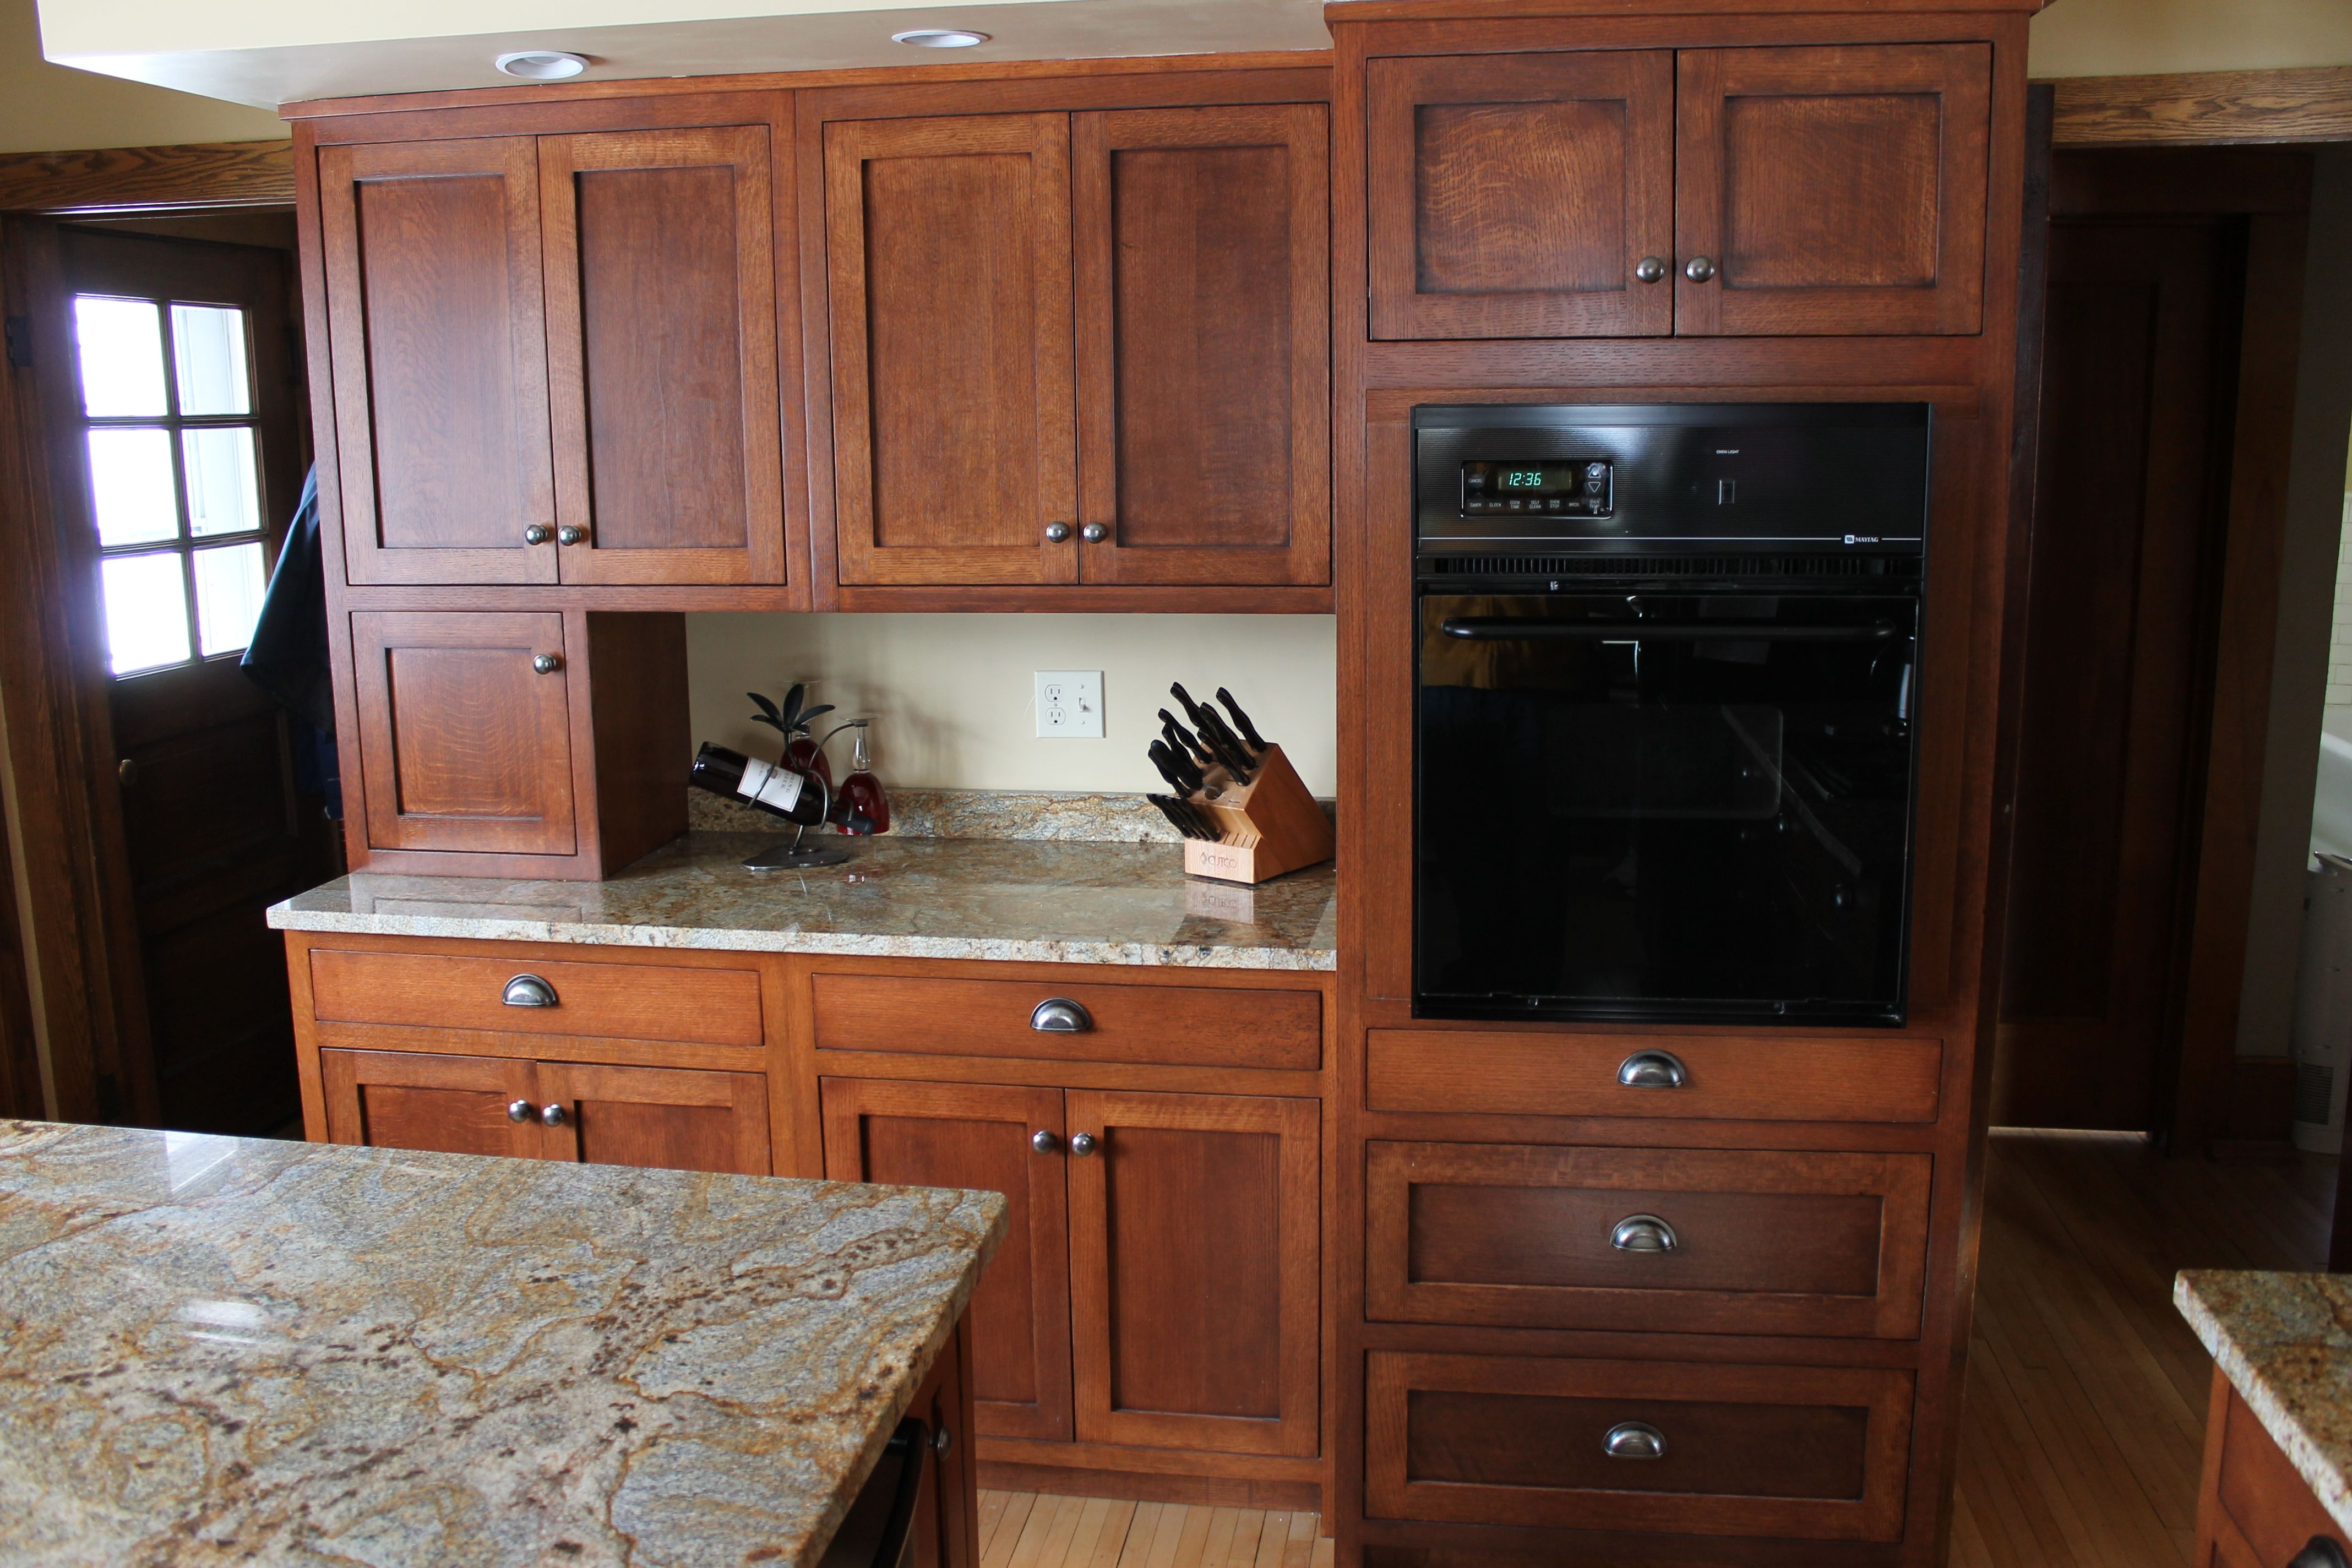 Red Oak Kitchen Cabinets Pantry Storage Cabinet Quarter Sawn Different Colors Of Travel In And Out Style Throughout Recent Years An Attractive Color May Be